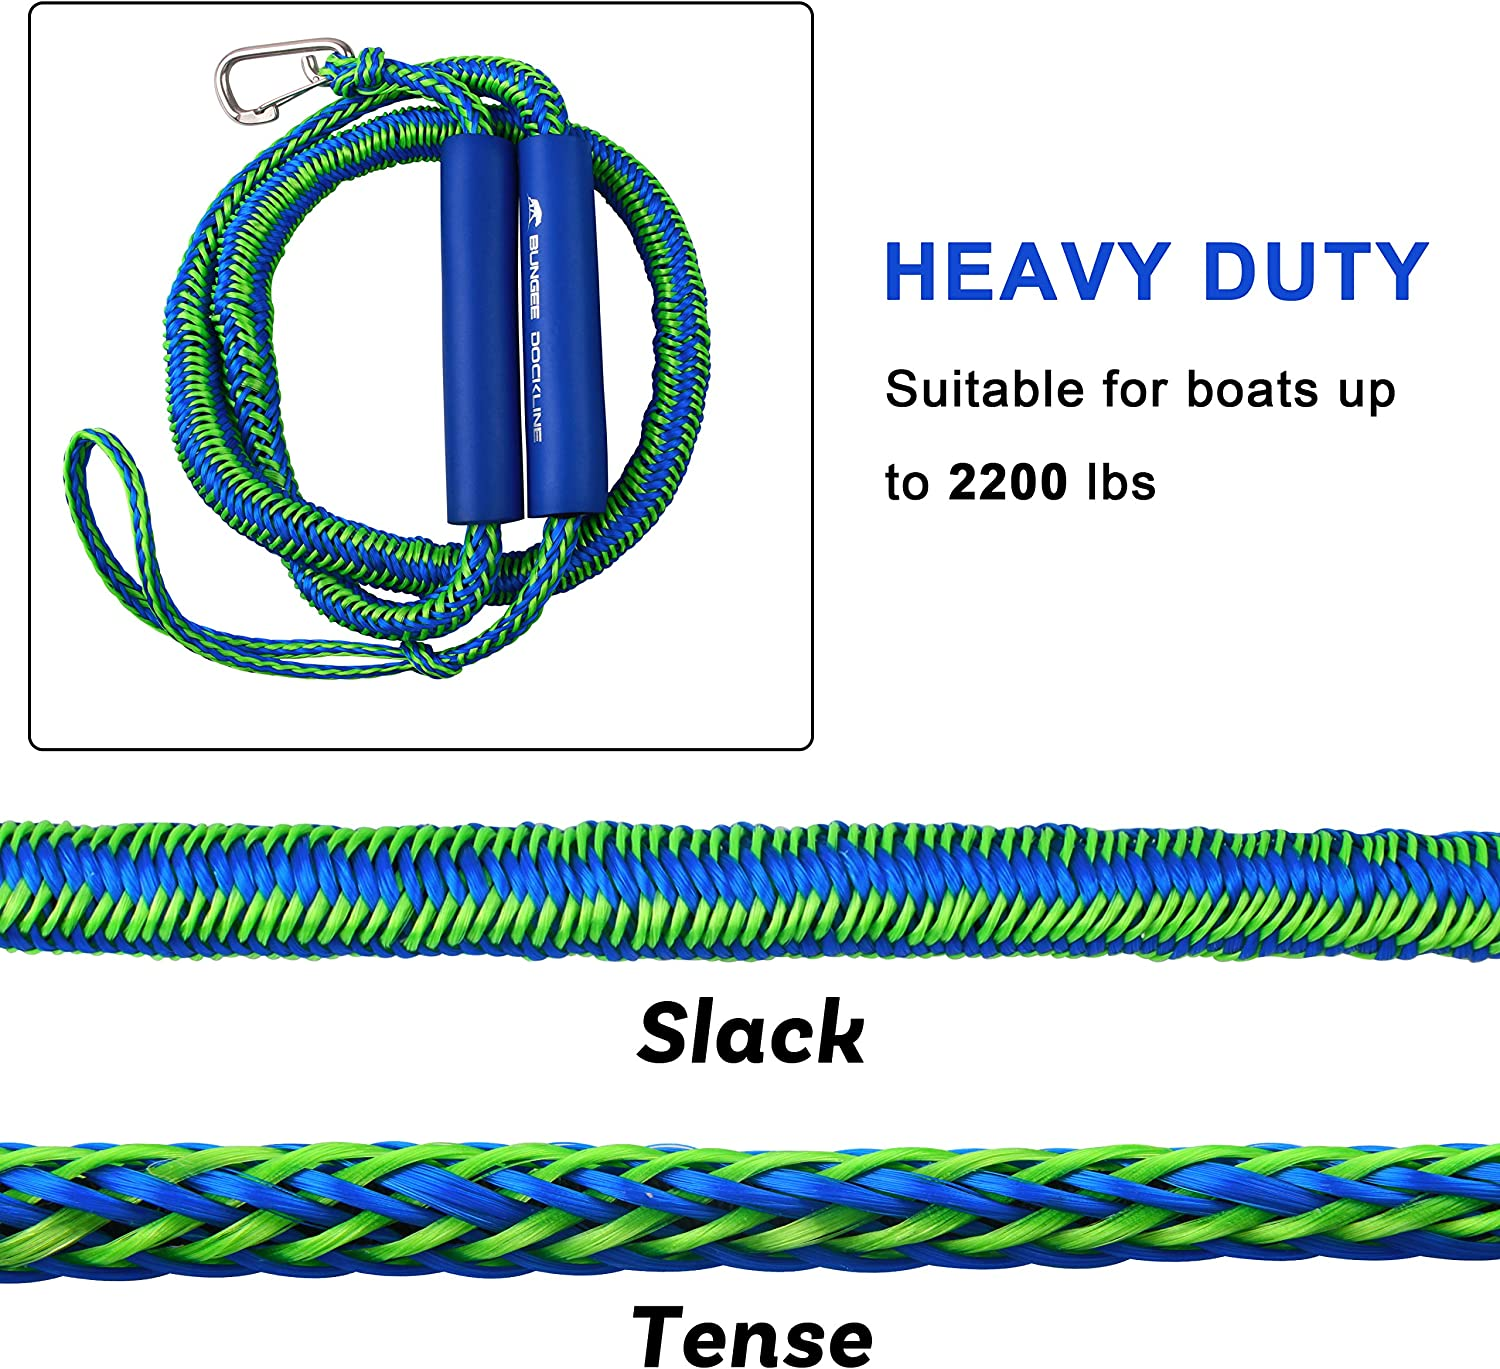 Foam Float Docking Rope Mooring Boat Rope for Docking,PWC,Jet ski,Kayak Shaddock Fishing PWC Bungee Dock Lines Stretchable,2 Pack Bungee Cord with 316 Stainless Steel Clip